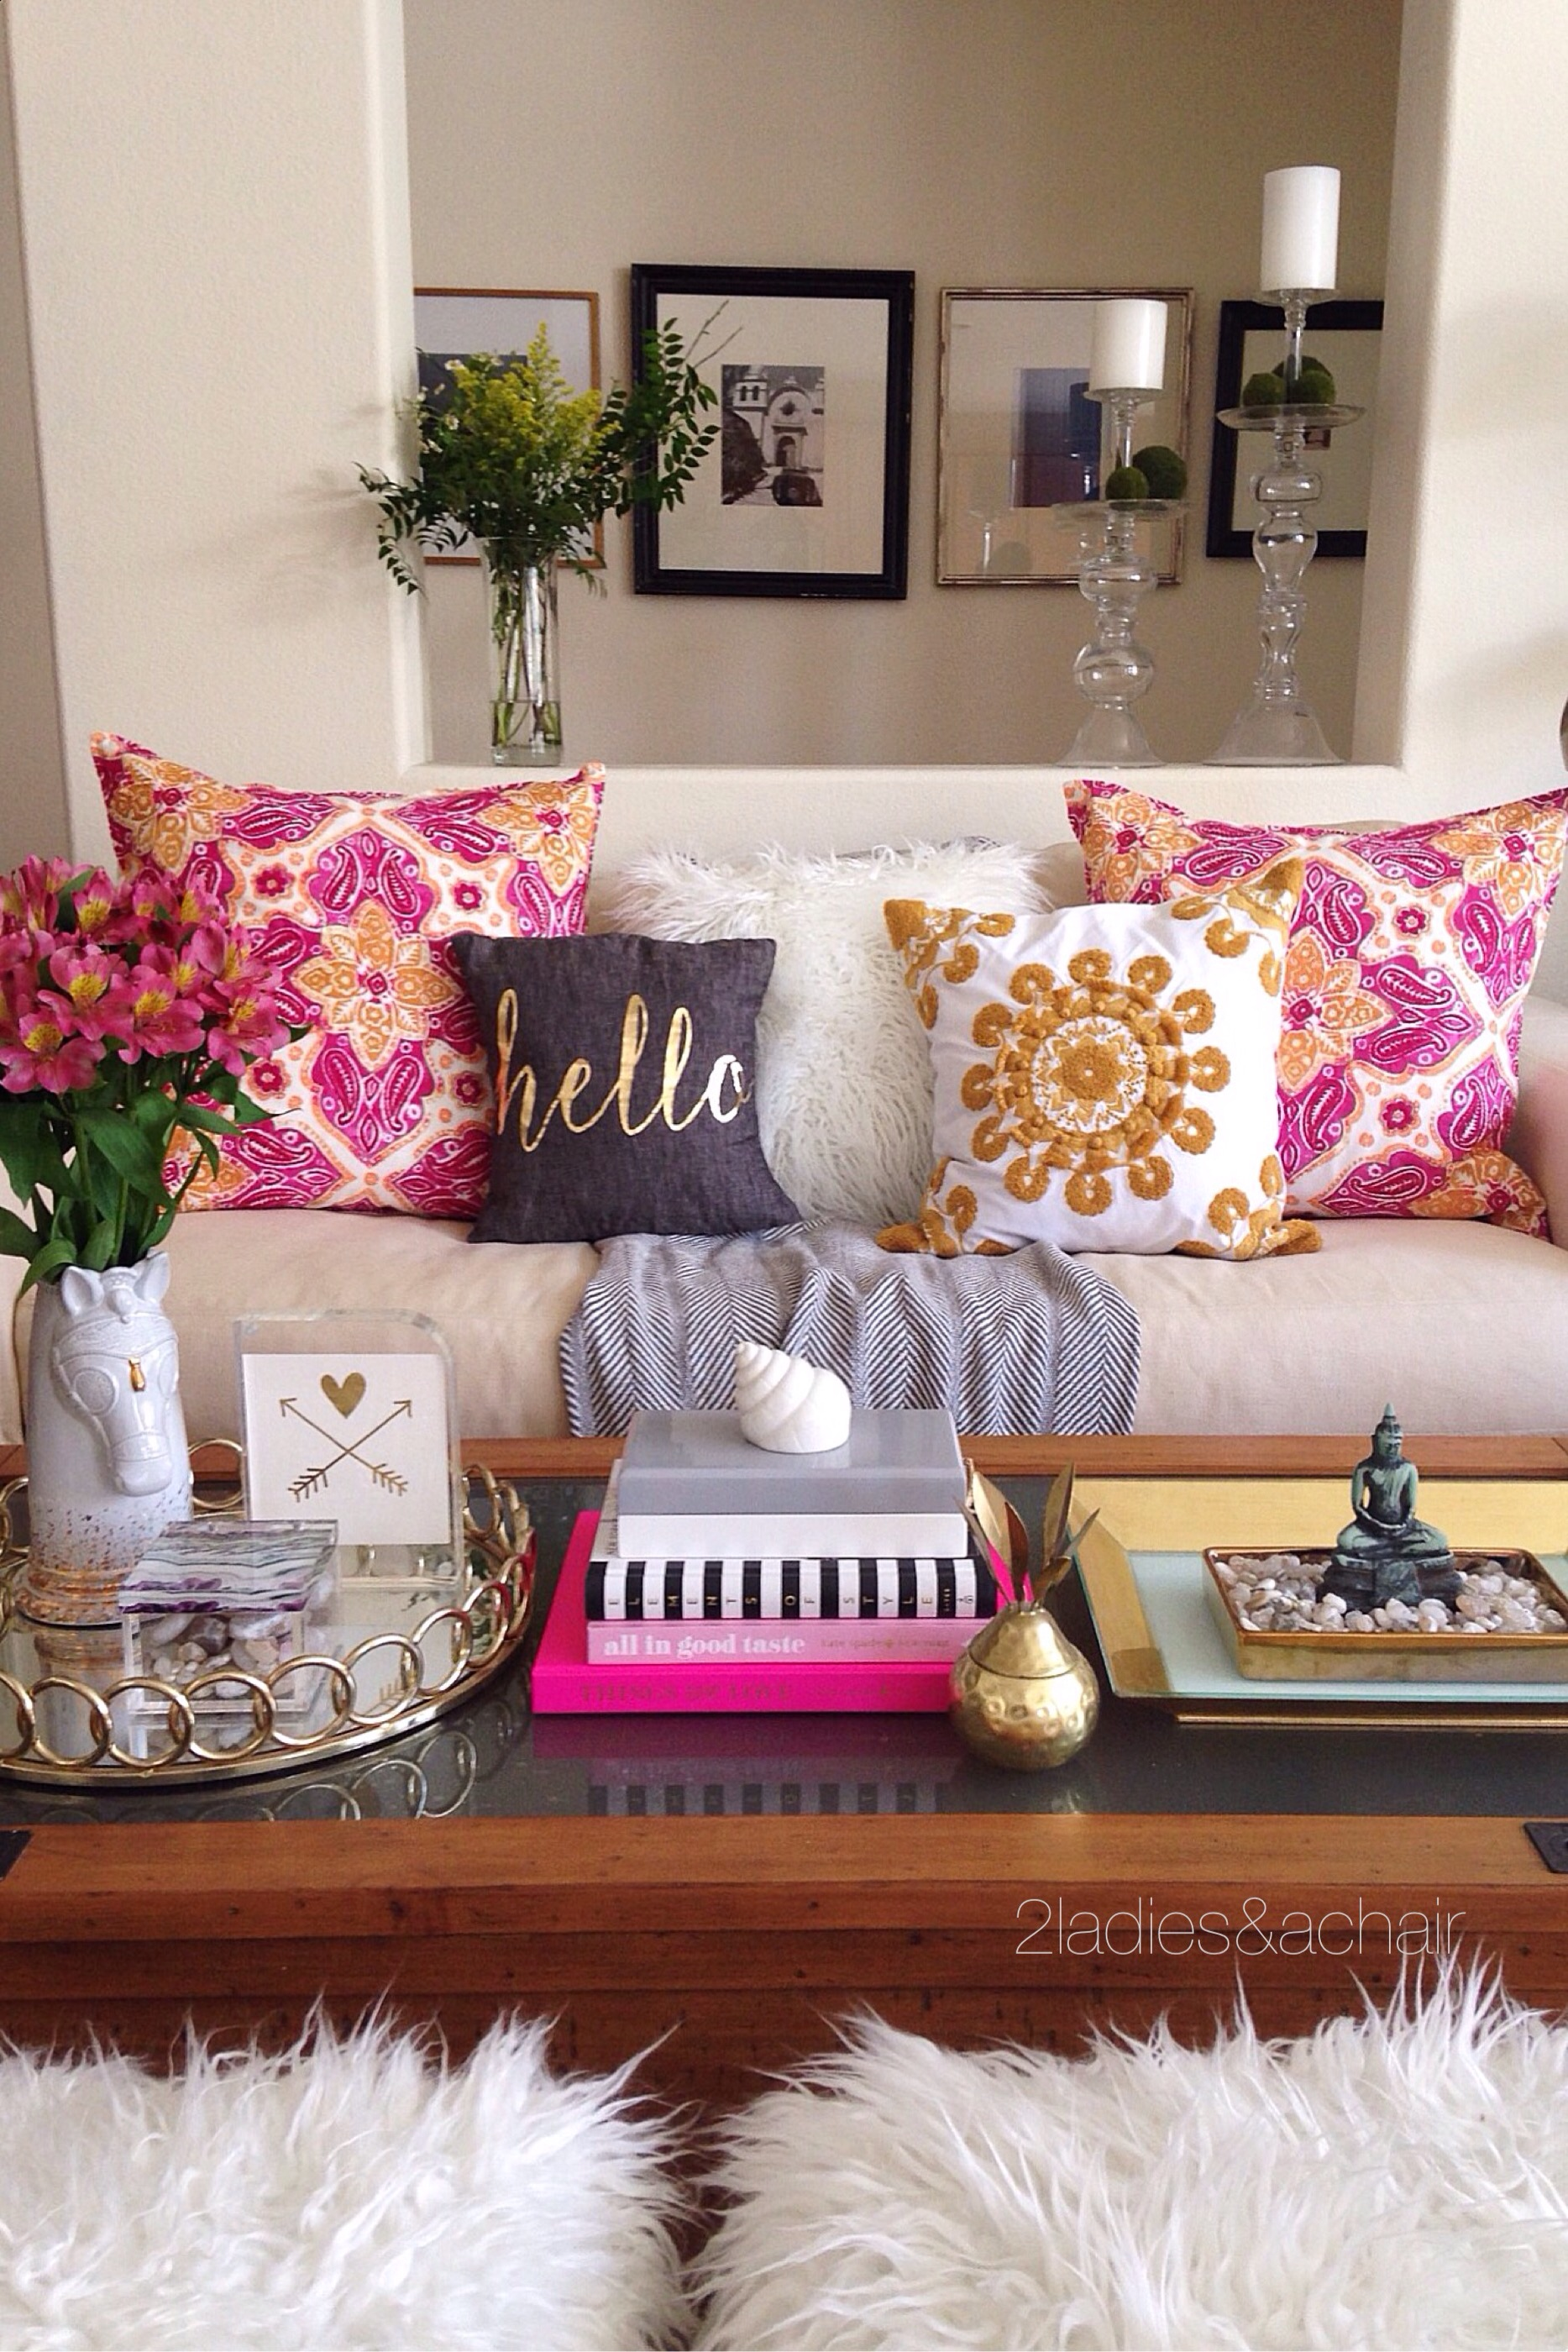 Decorating With Bright Colors 2 Ladies A Chair